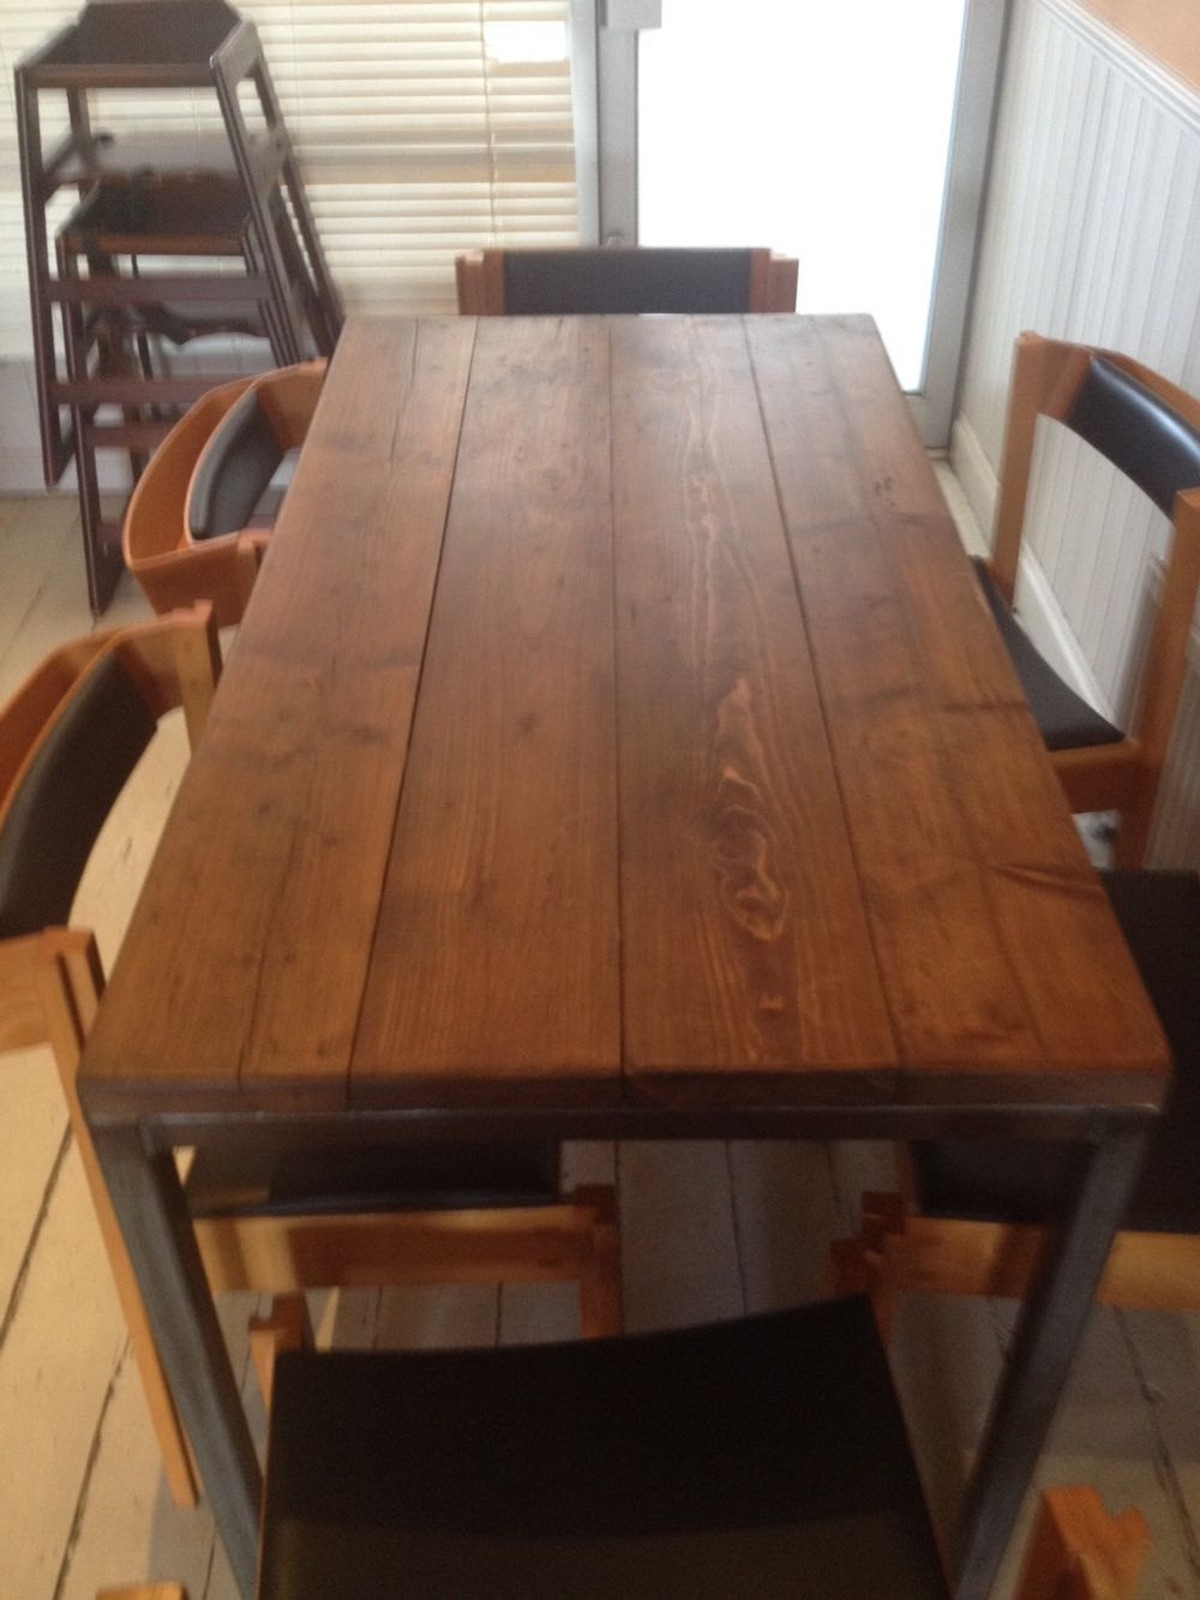 Secondhand hotel furniture dining tables reclaimed for Furniture 2nd hand